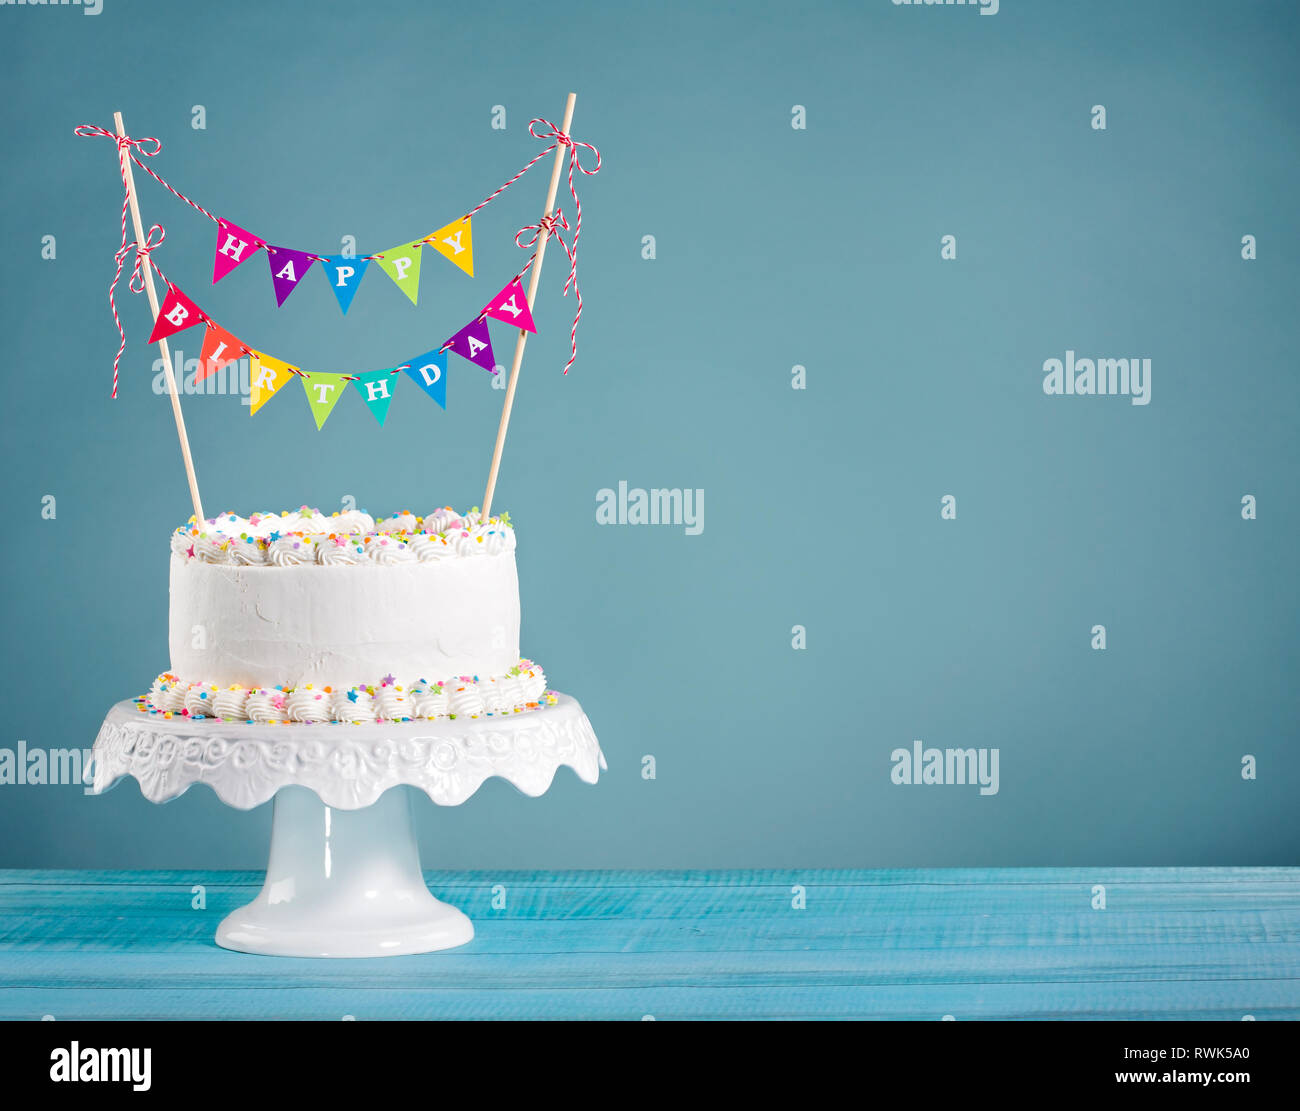 White Buttercream birthday cake with colorful bunting and